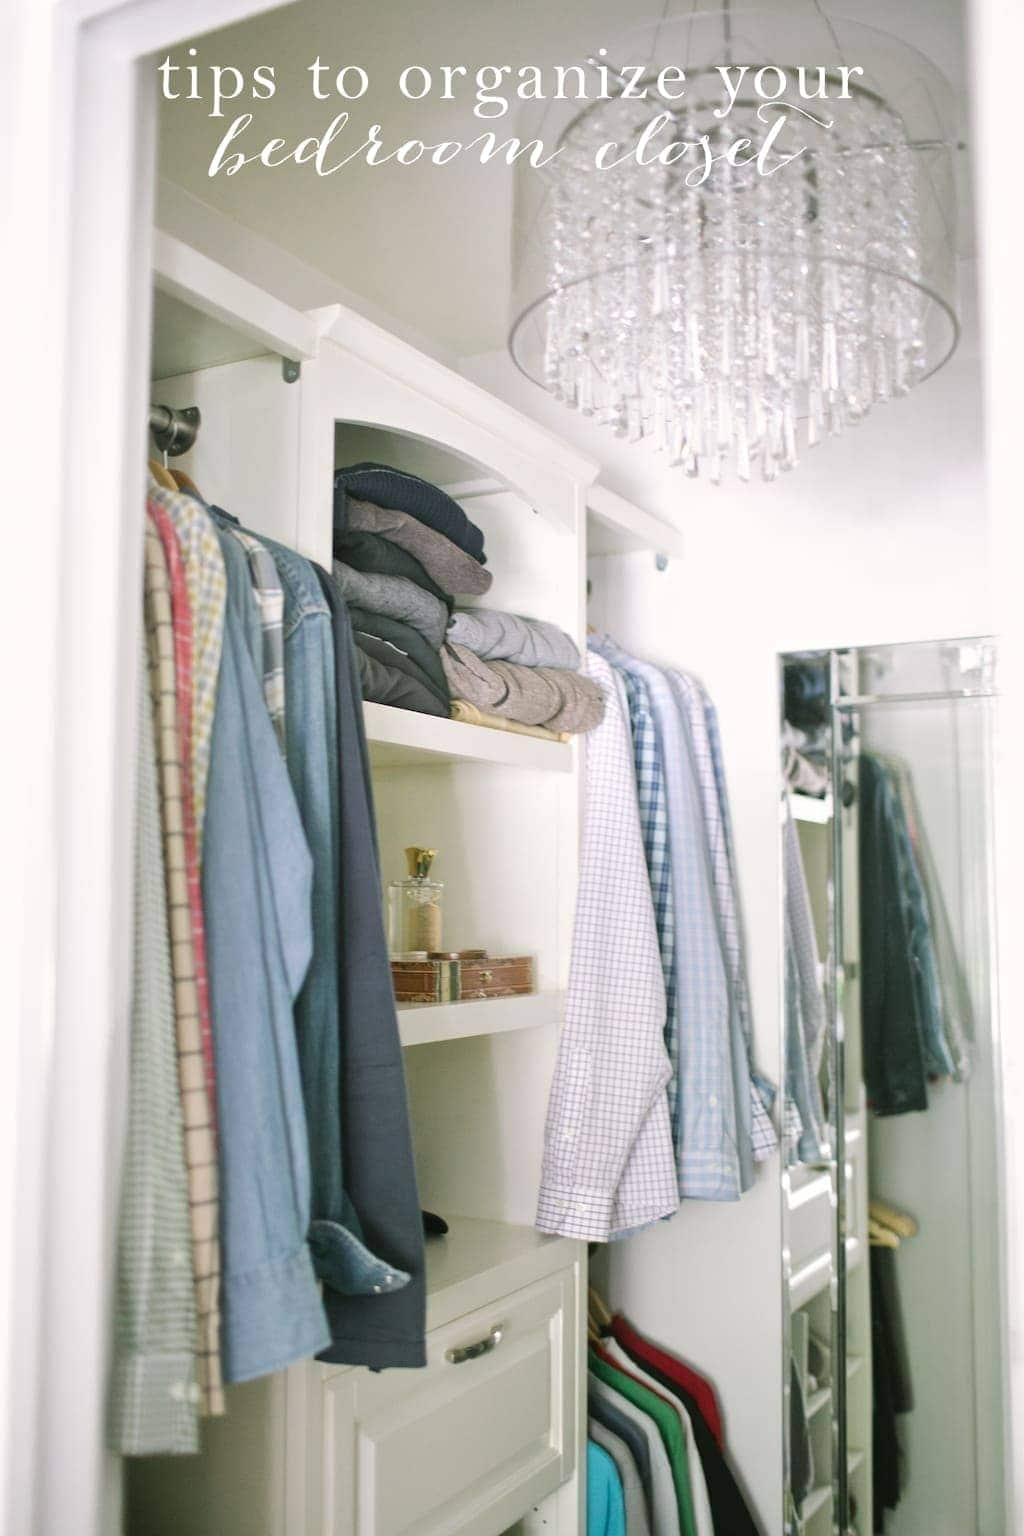 . Tips to Organize your Bedroom Closet